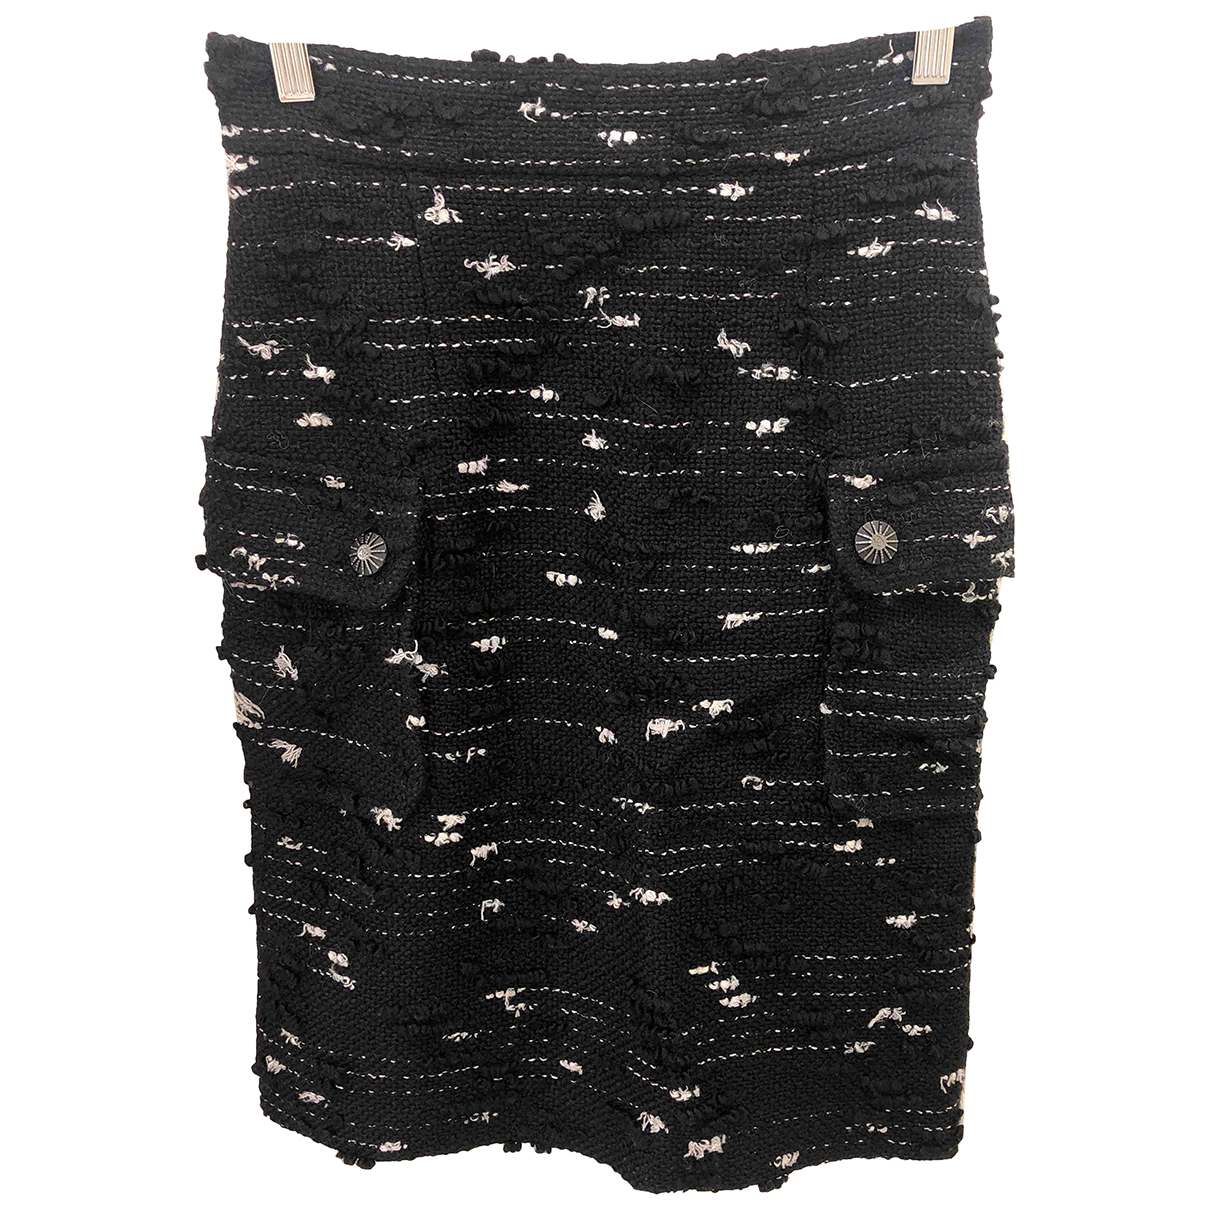 Chanel N Black Wool skirt for Women 36 IT